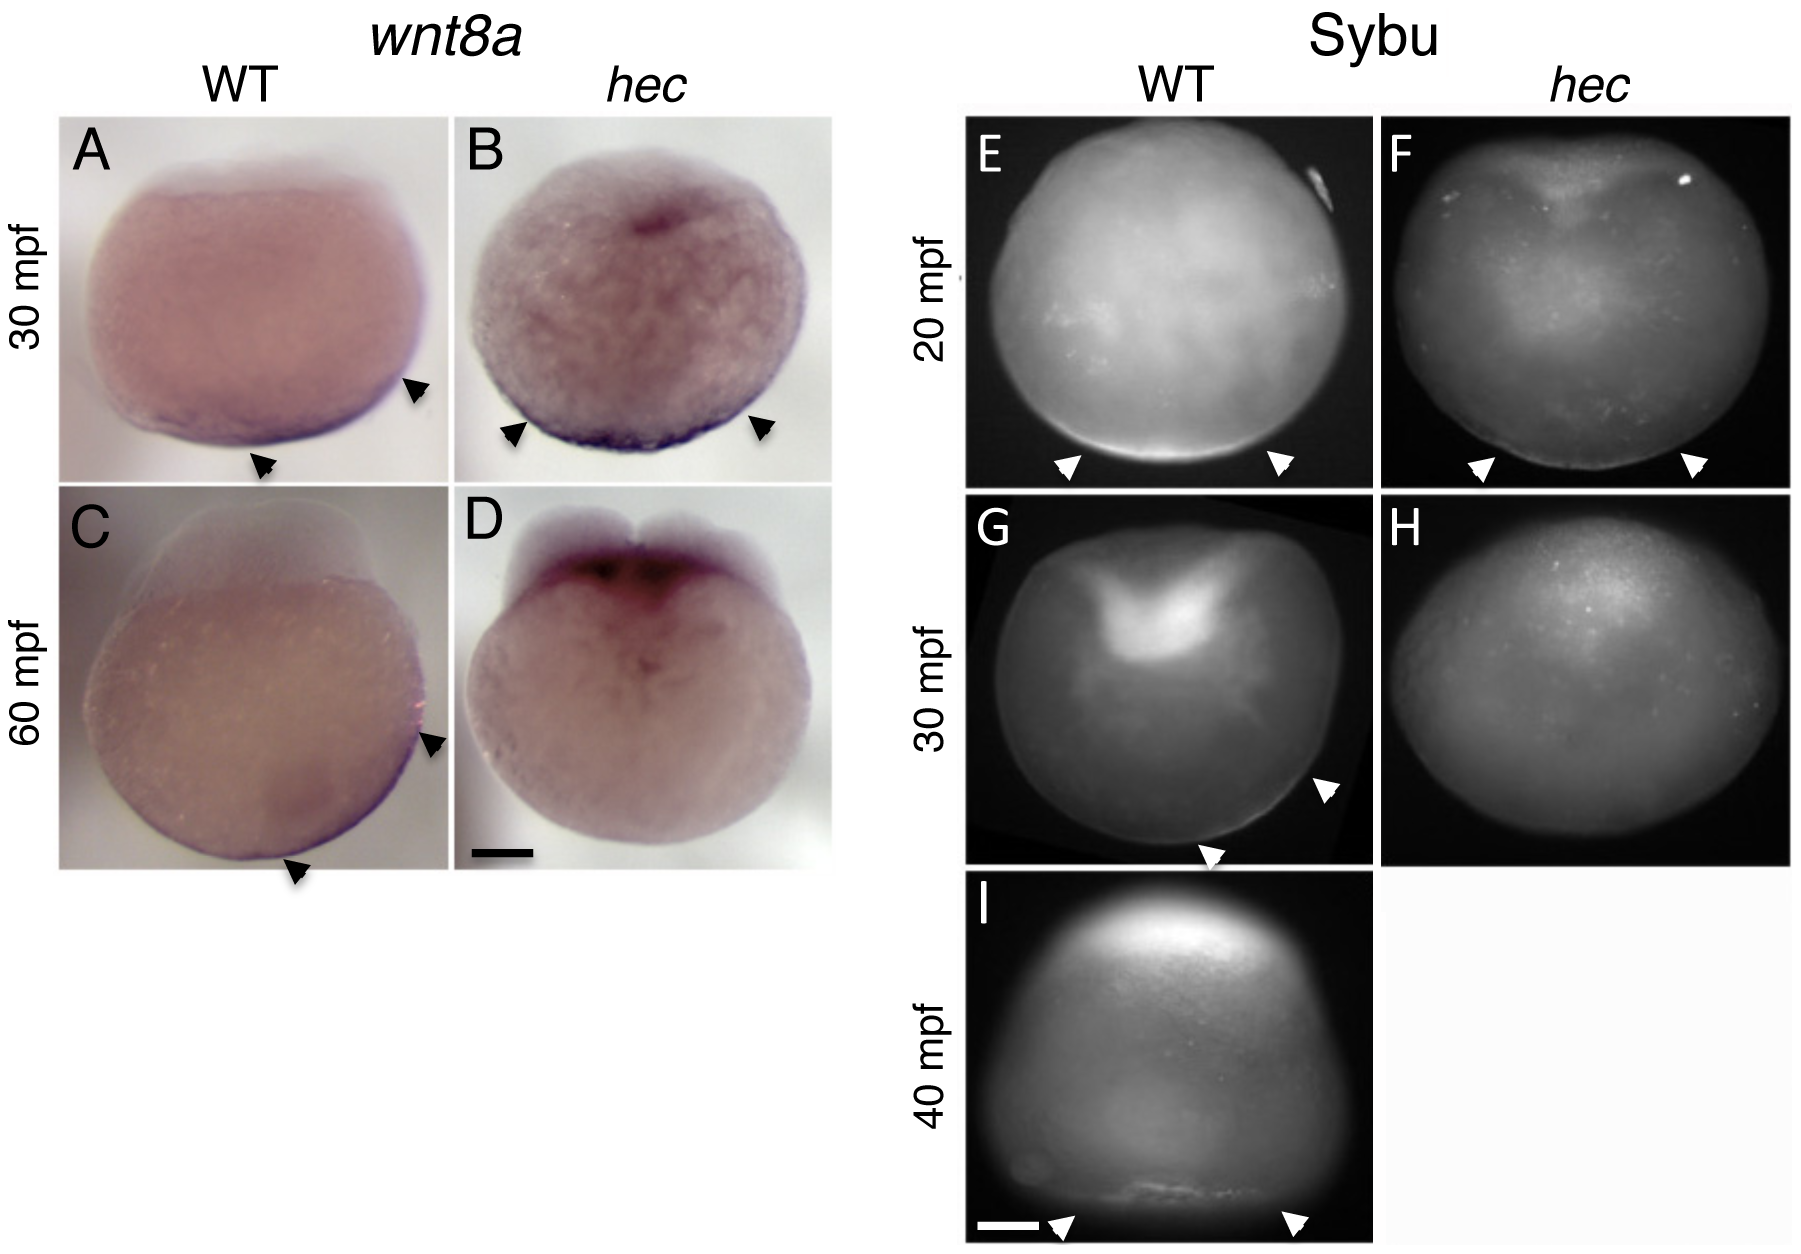 Defects in the vegetal localization of <i>wnt8a</i> mRNA and Sybu protein.